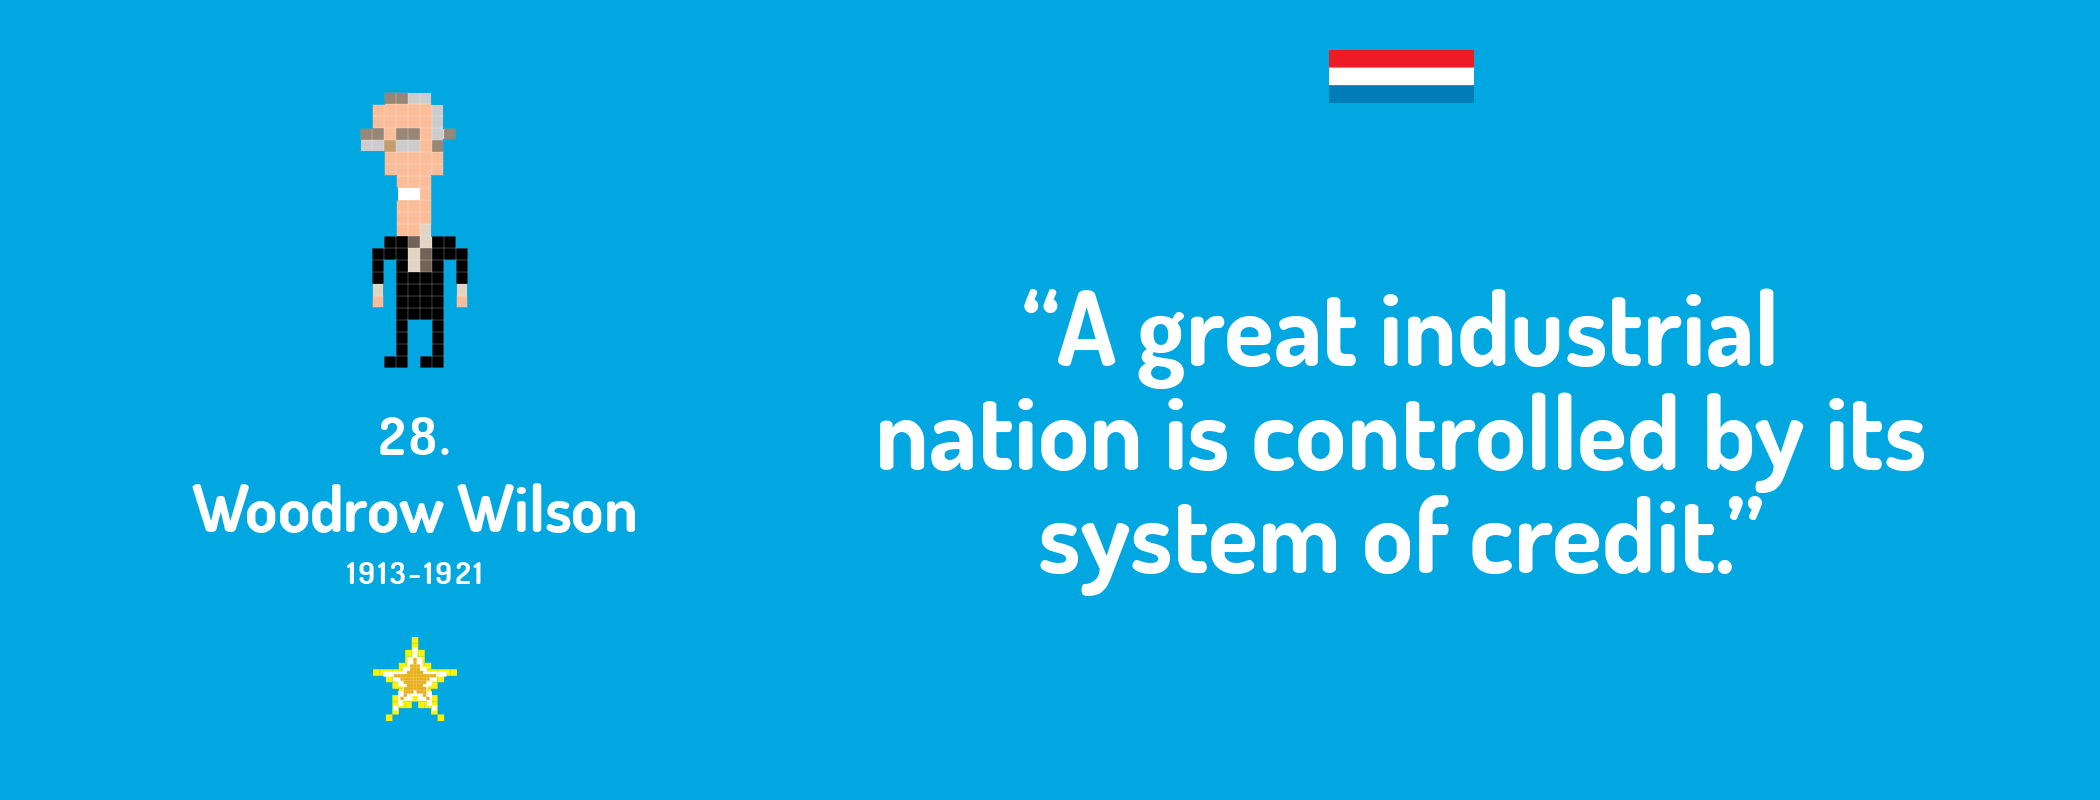 A great industrial nation is controlled by its system of credit.